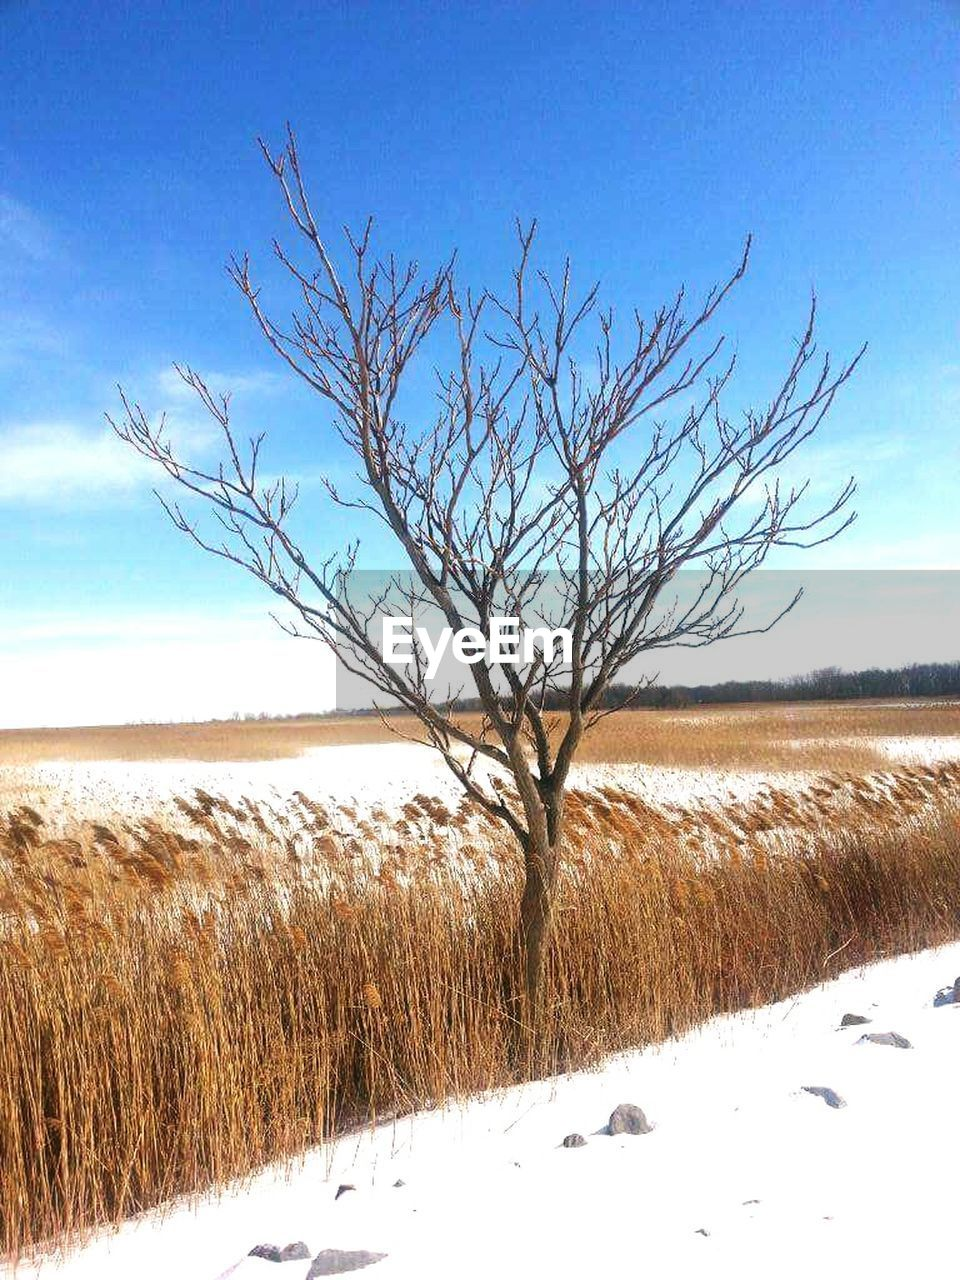 bare tree, nature, winter, cold temperature, tranquility, landscape, tranquil scene, snow, beauty in nature, scenics, field, outdoors, tree, sky, day, no people, grass, branch